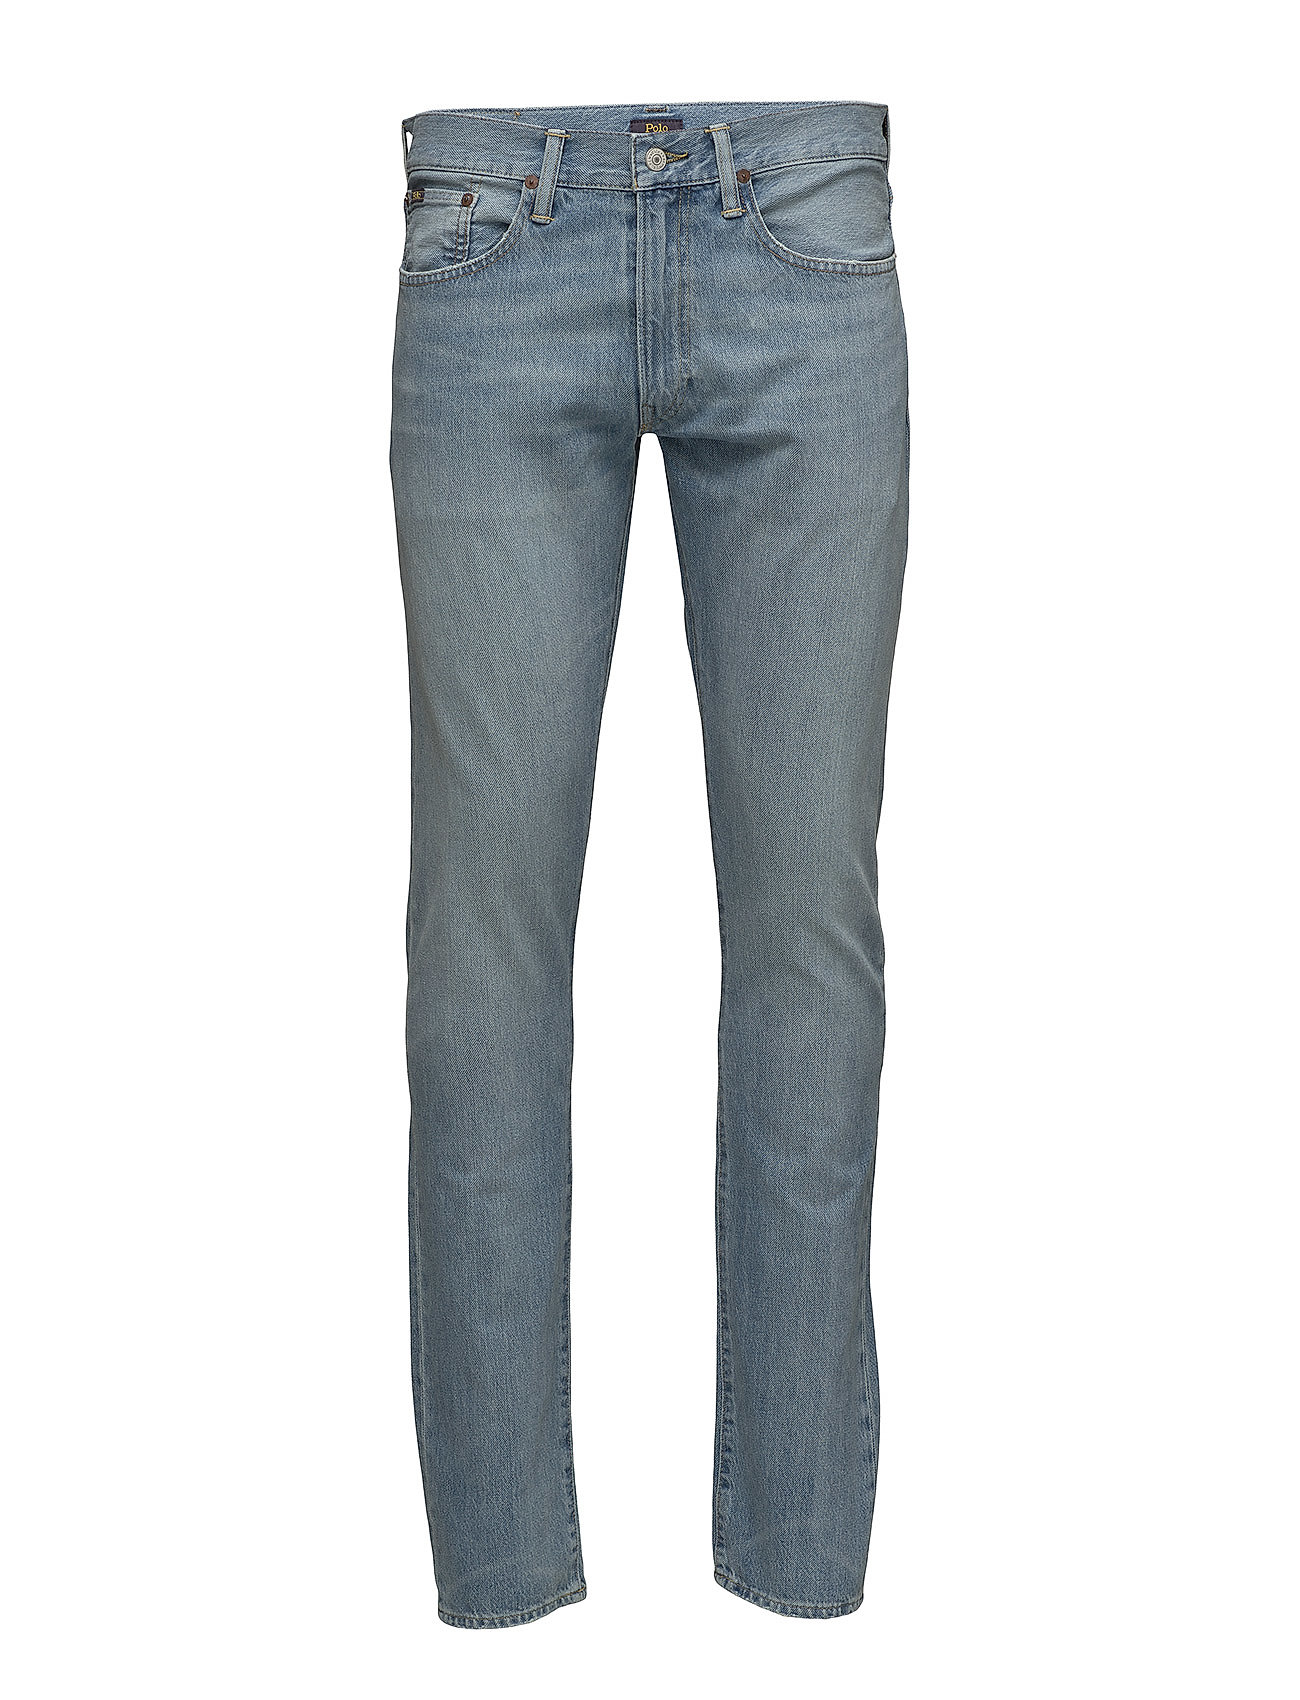 Polo Ralph Lauren Sullivan Slim Stretch Jean - ANDREWS STRETCH